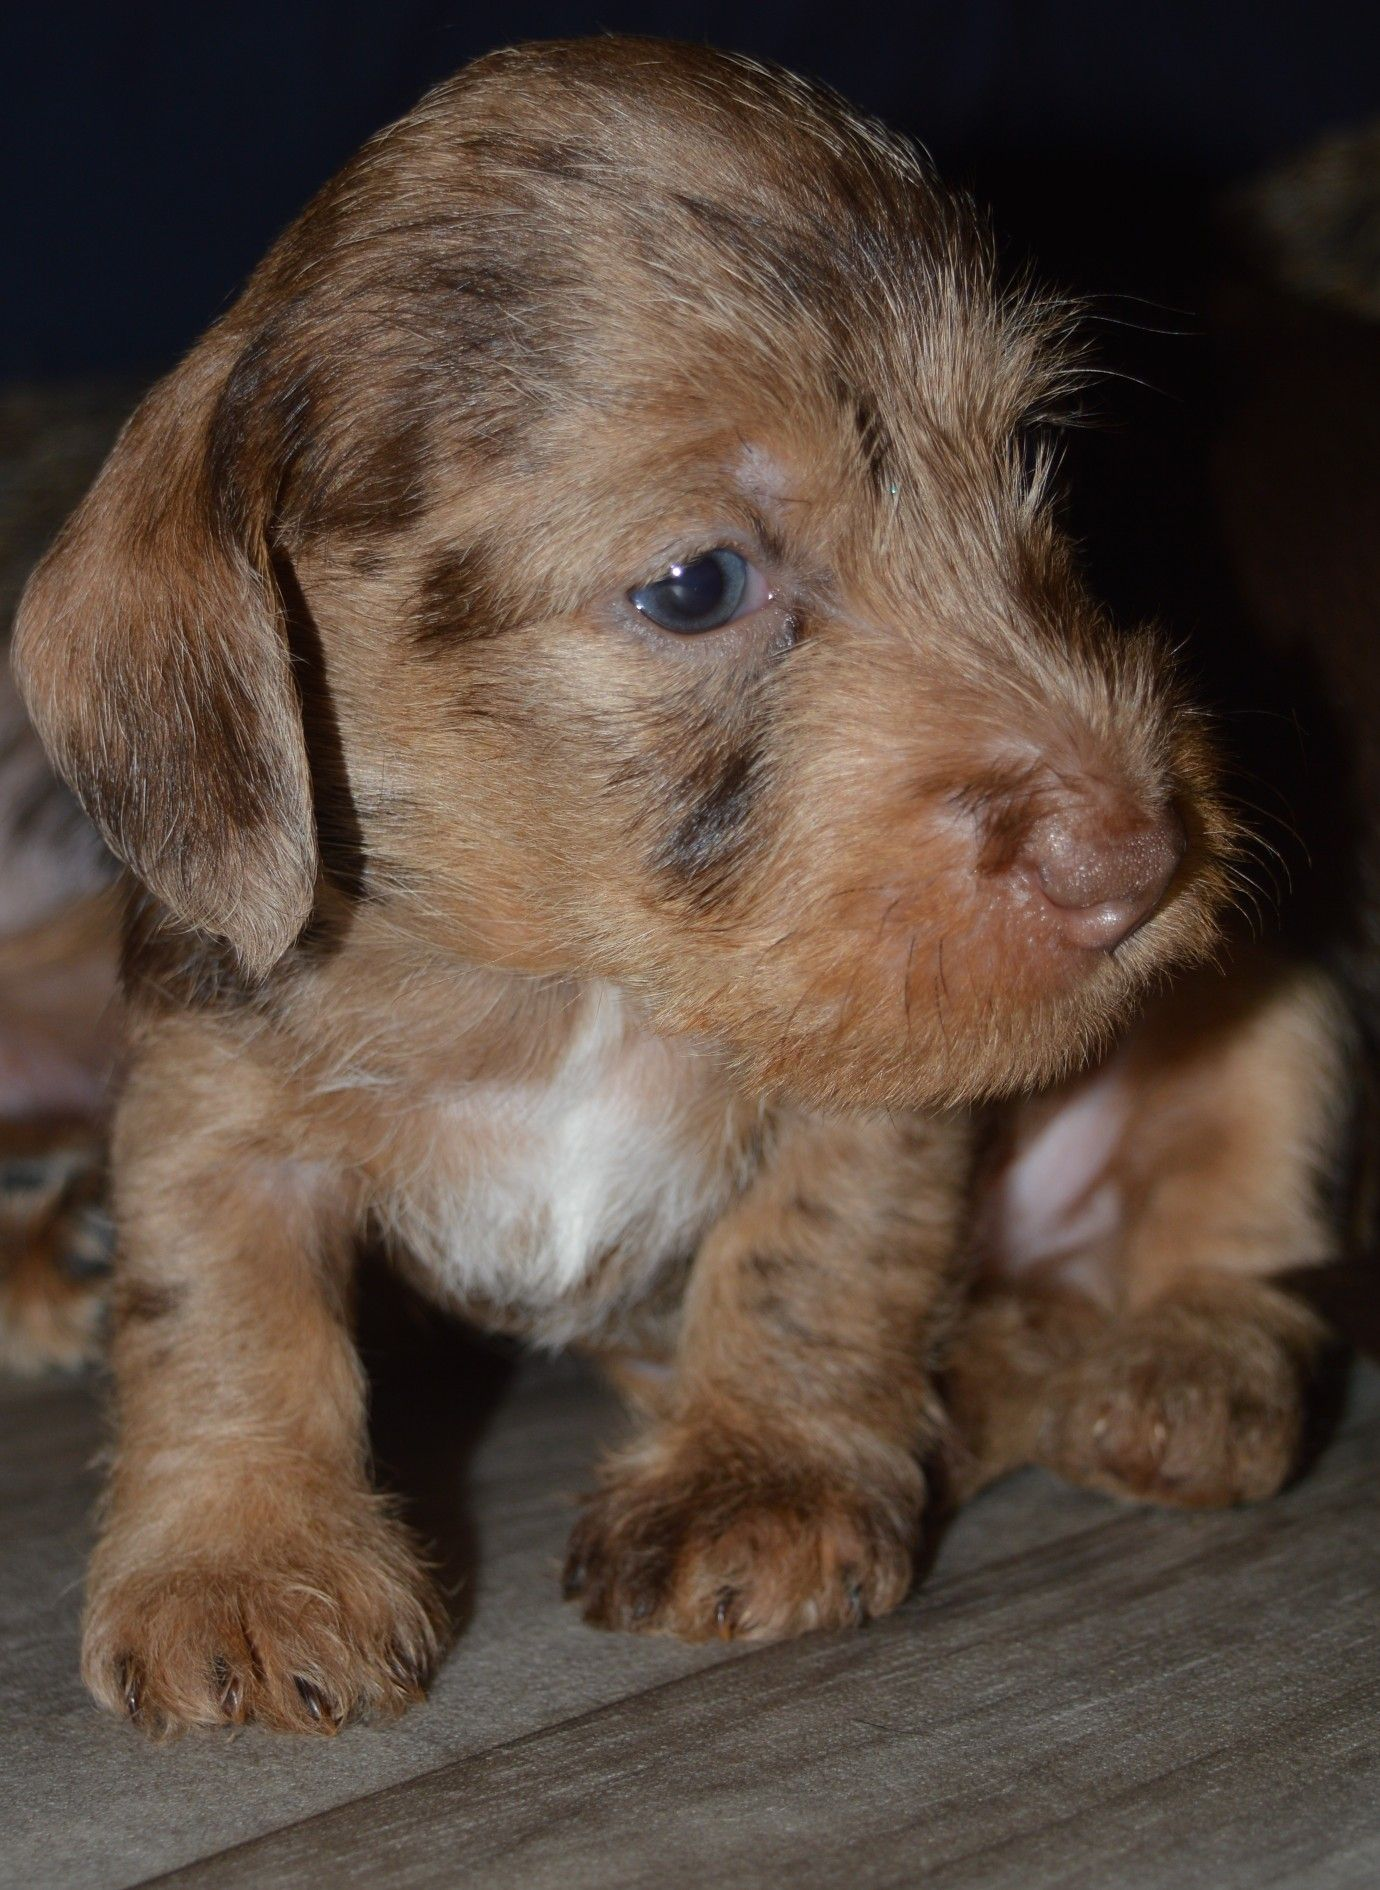 Puppy for sale in 2020 Puppies, Cute baby animals